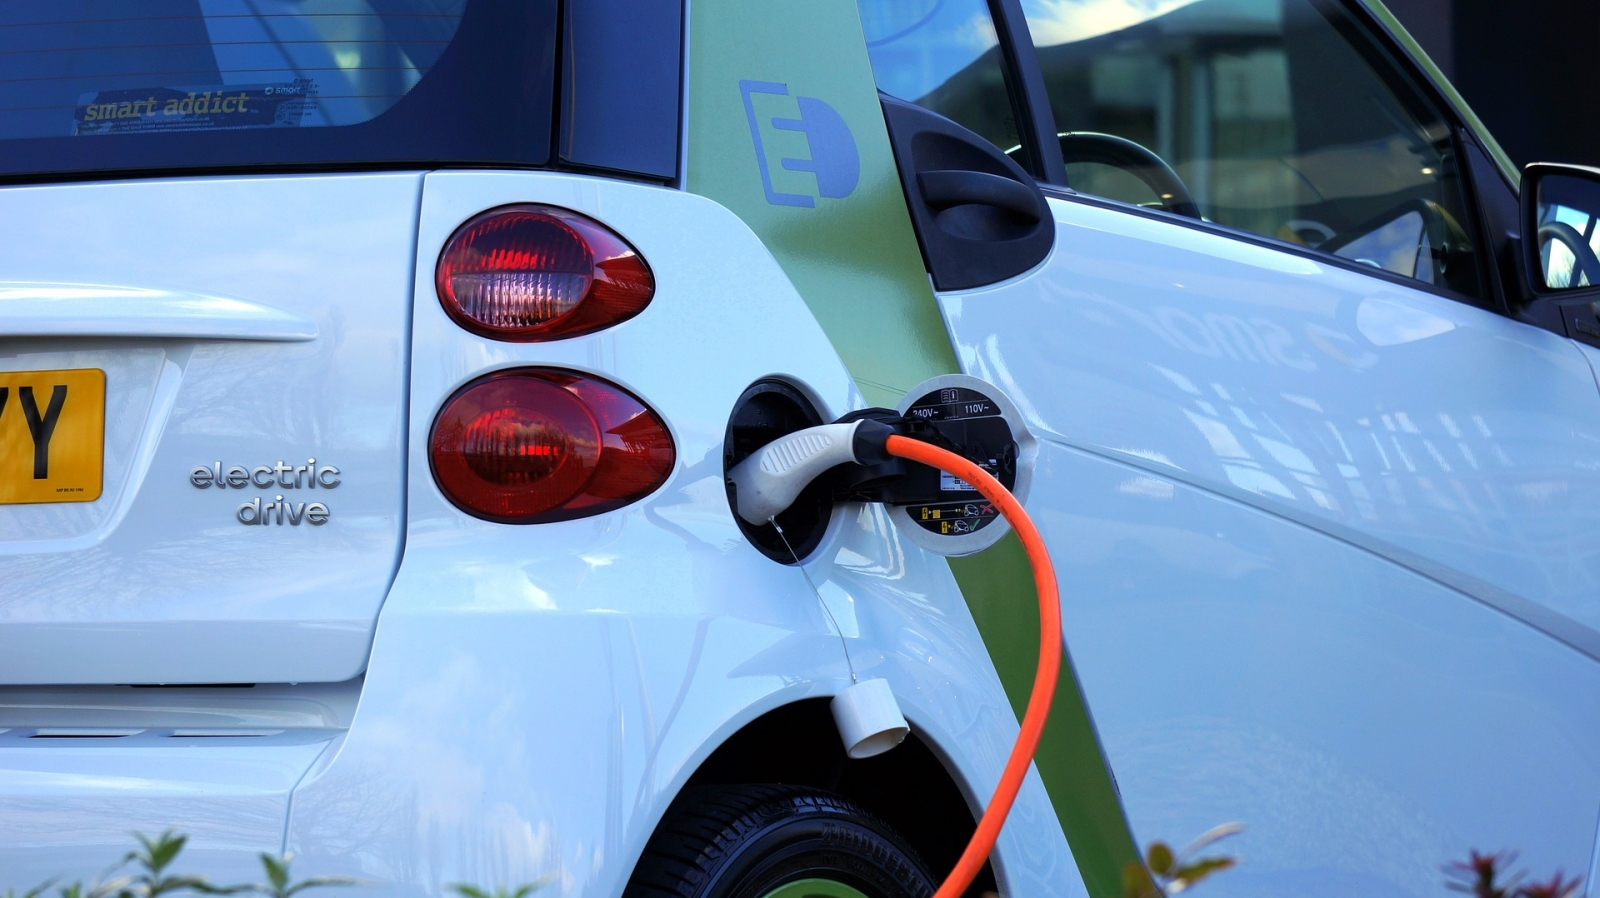 electric-car-bbc-1-plus-IFT-INFORM-TECHNOLOGIES